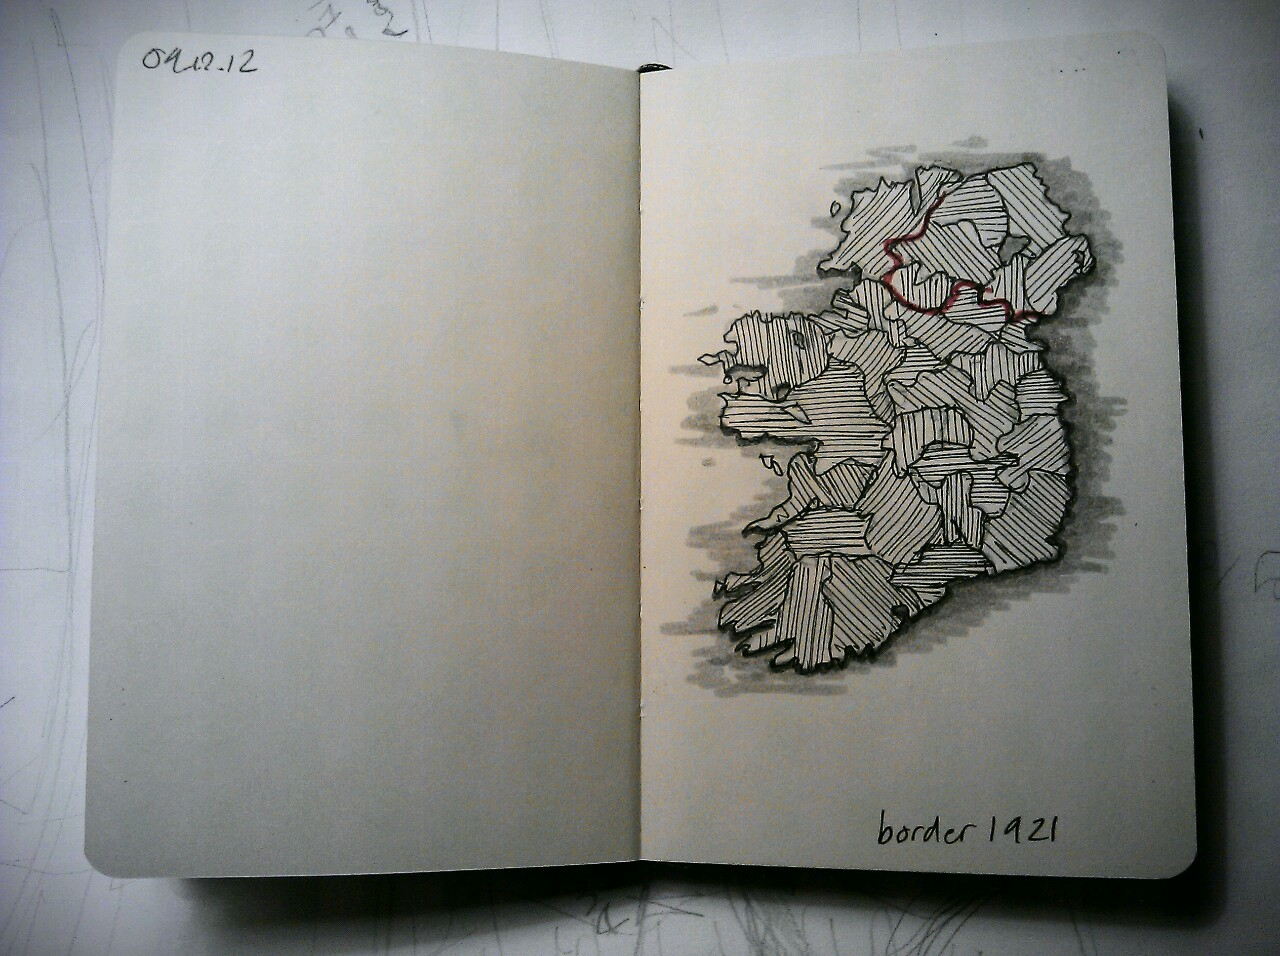 365 drawings later … day 313 … border 1921